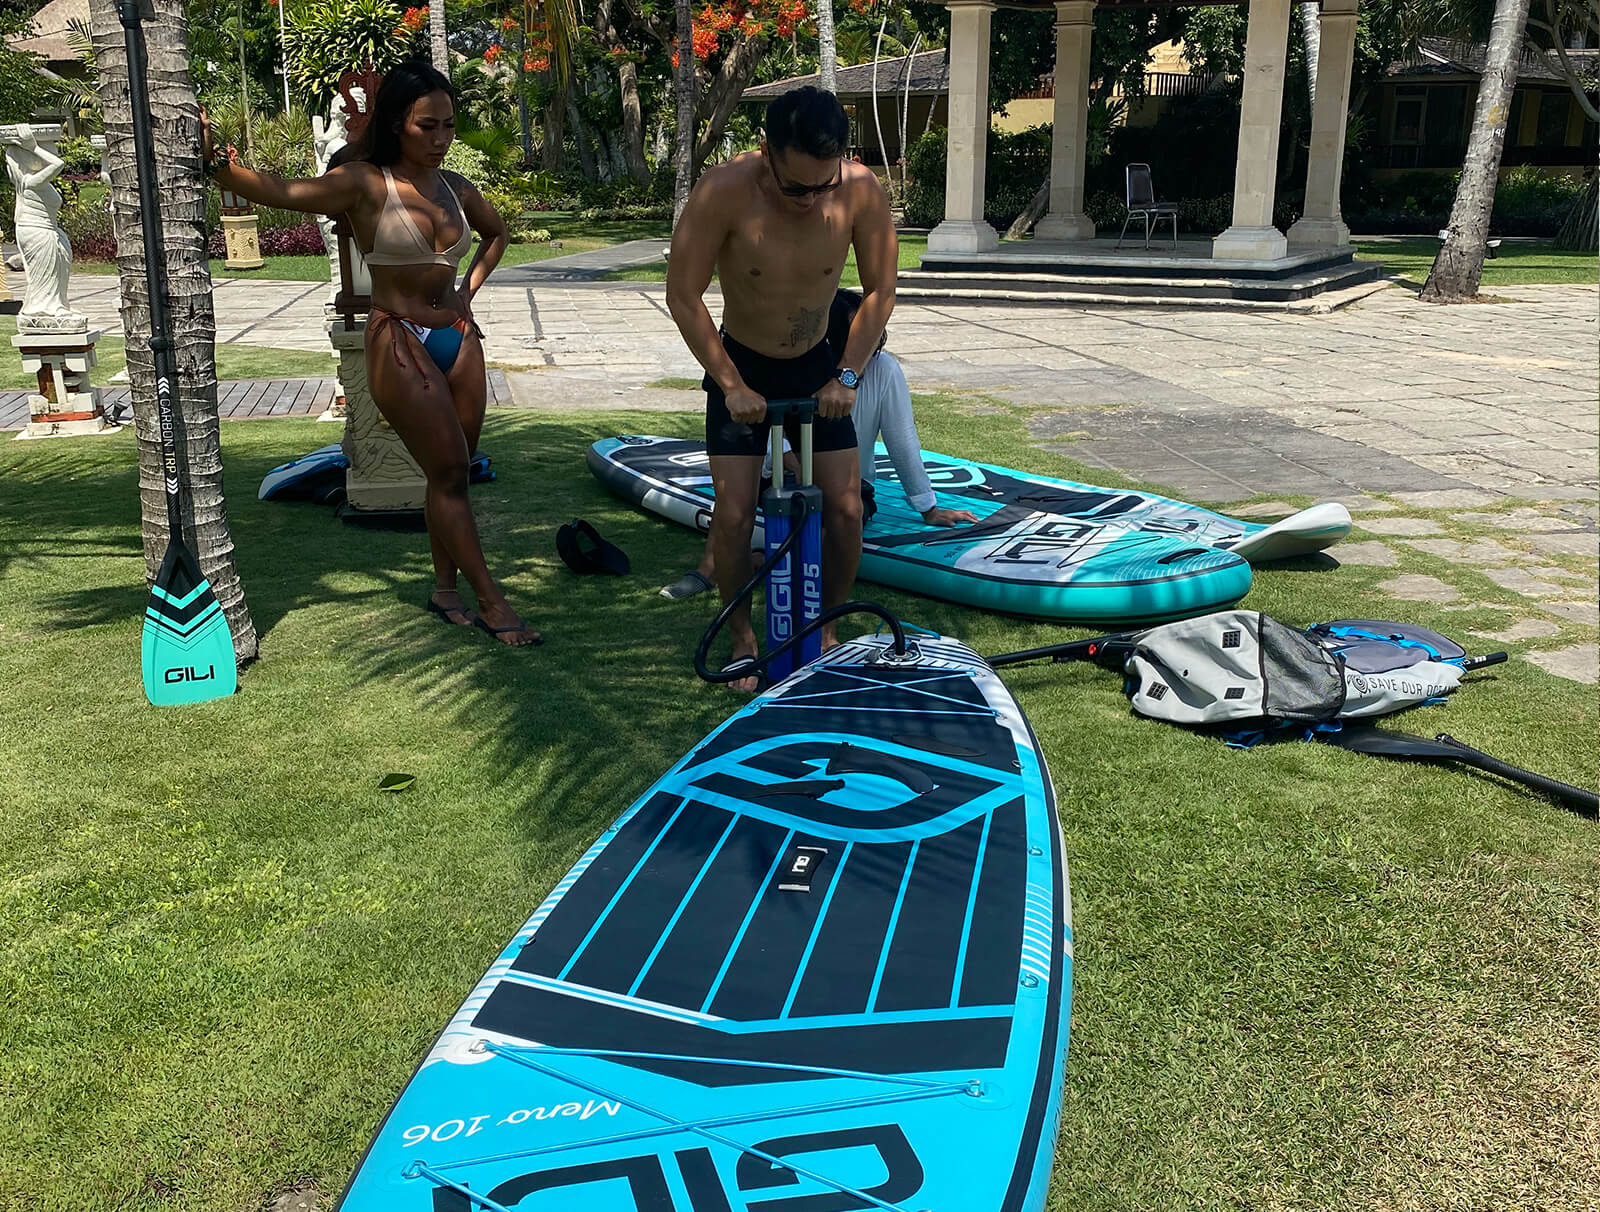 Hard Paddle Board or iSUP?